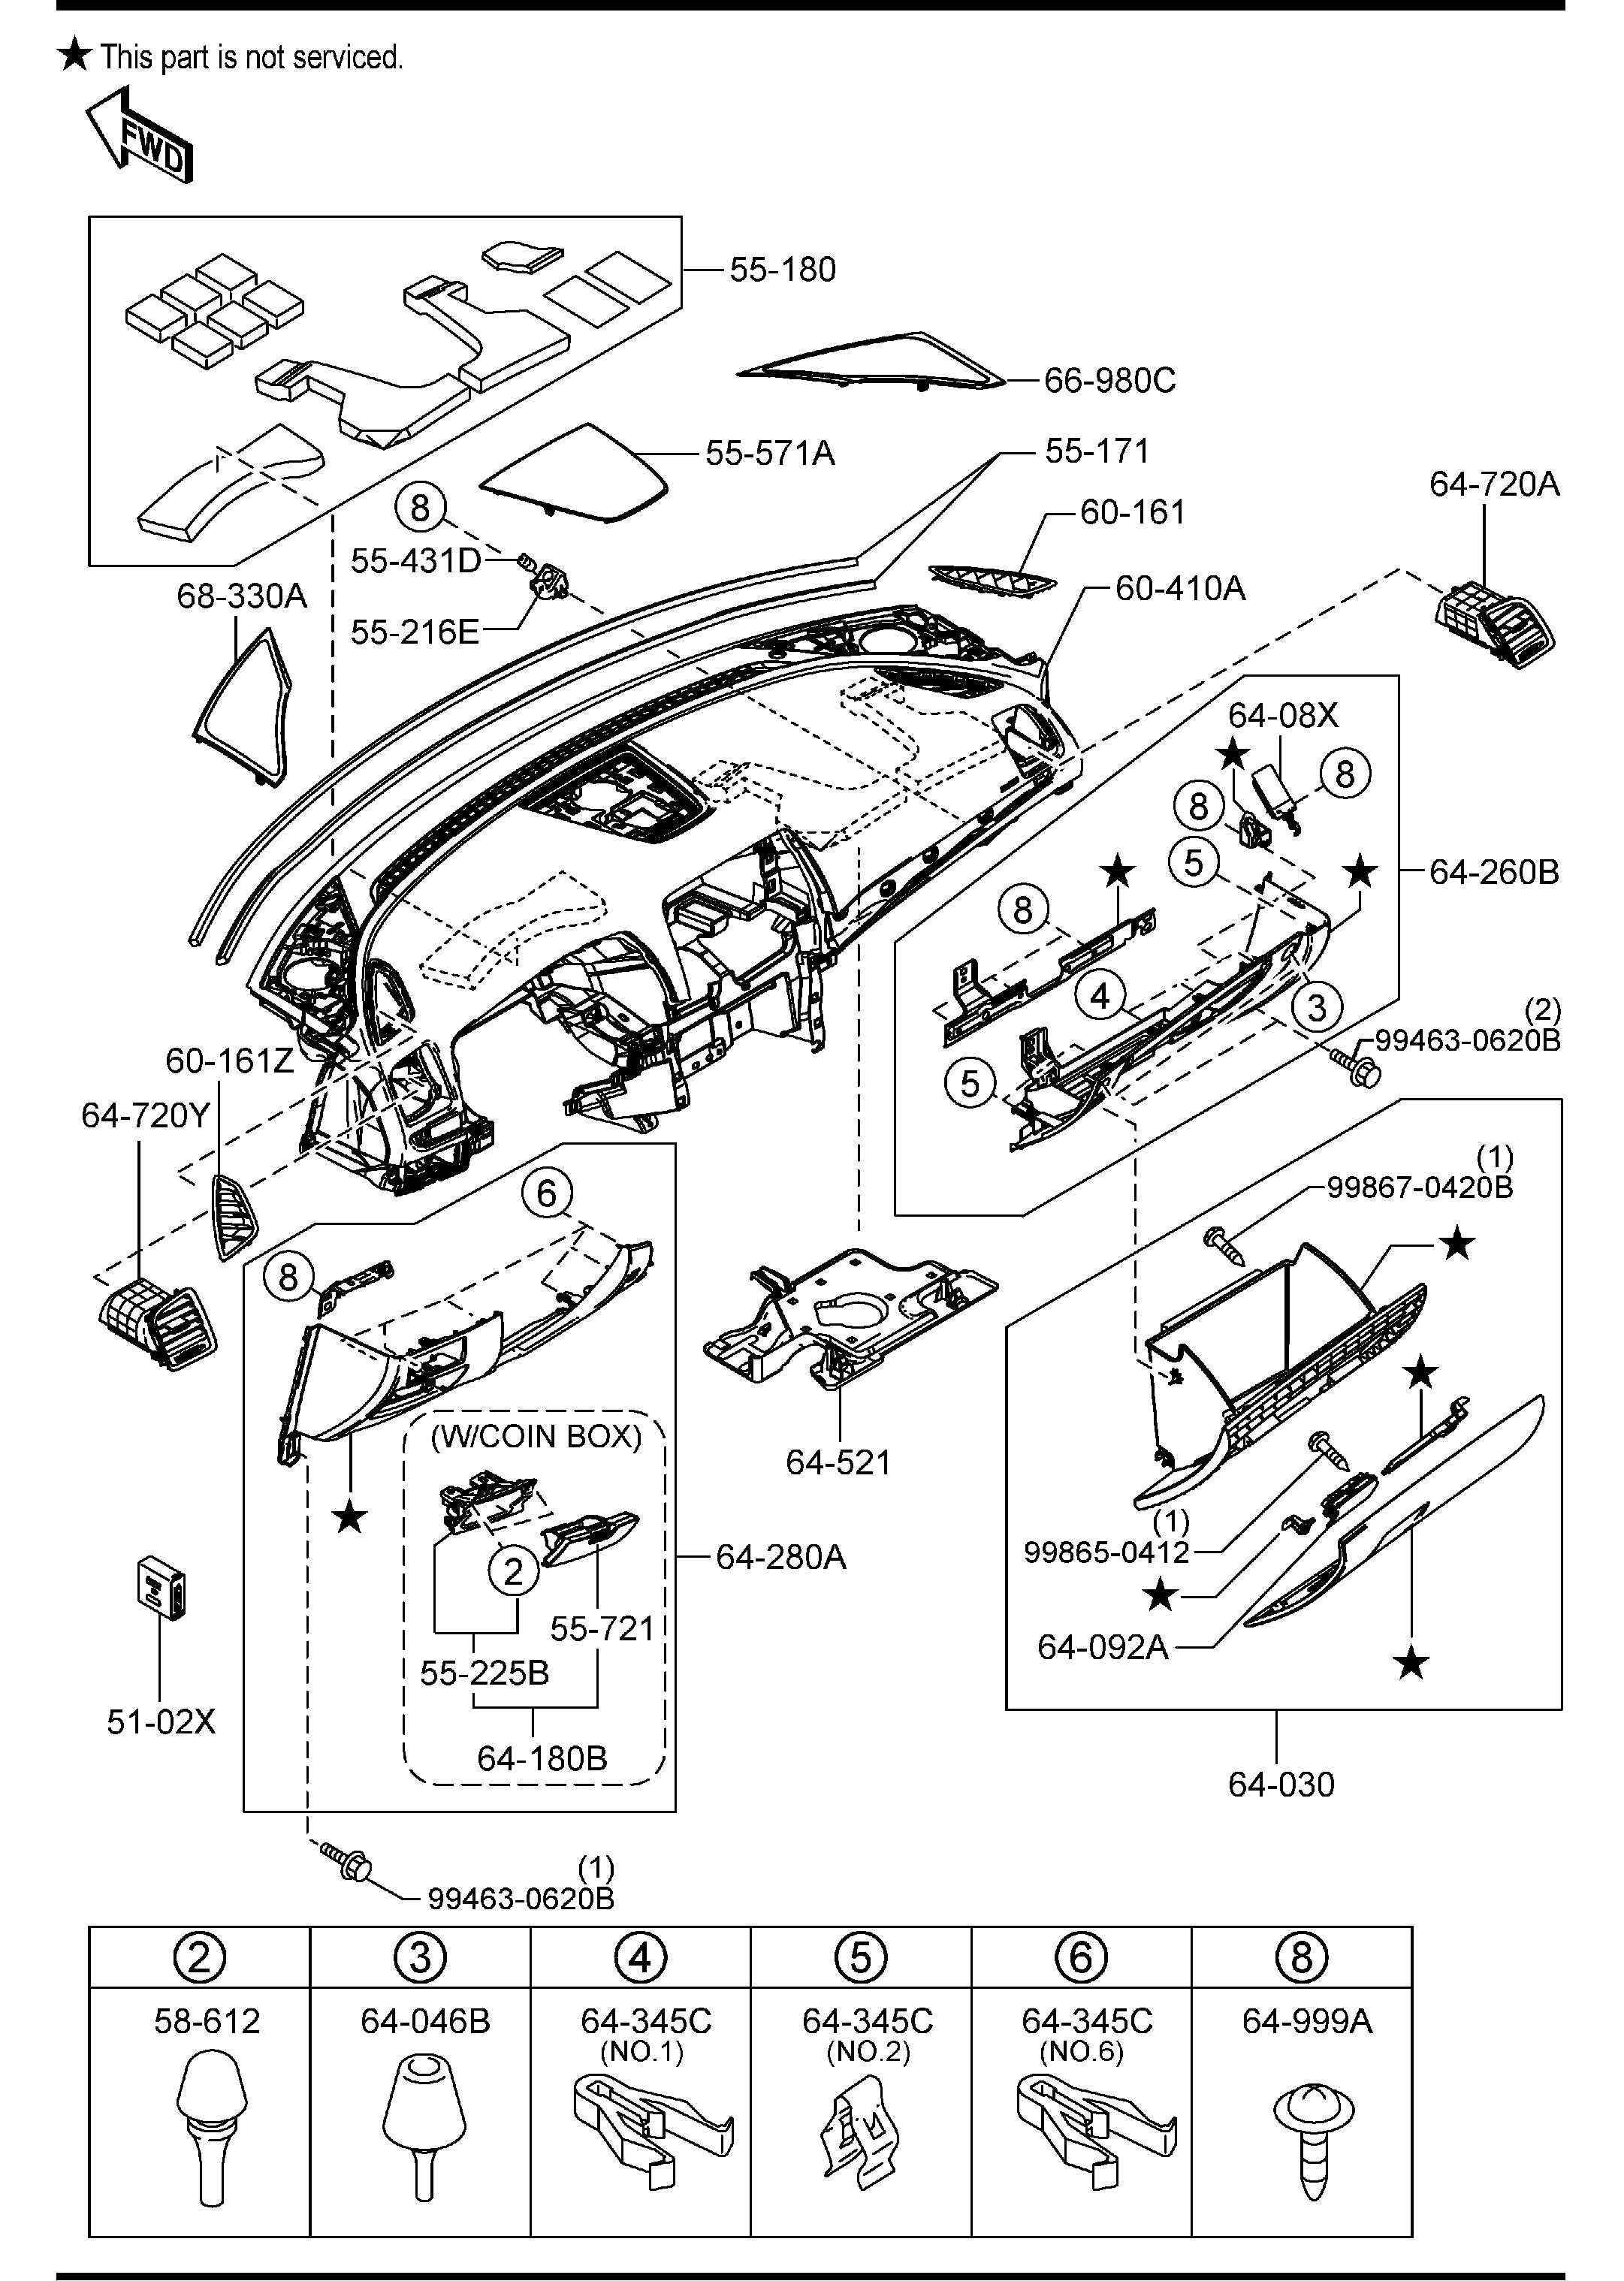 Diy Changing The Glove Box Light 3rd Gen Mazda 6 Forums Fuse Diagram 2004 6s Report This Image